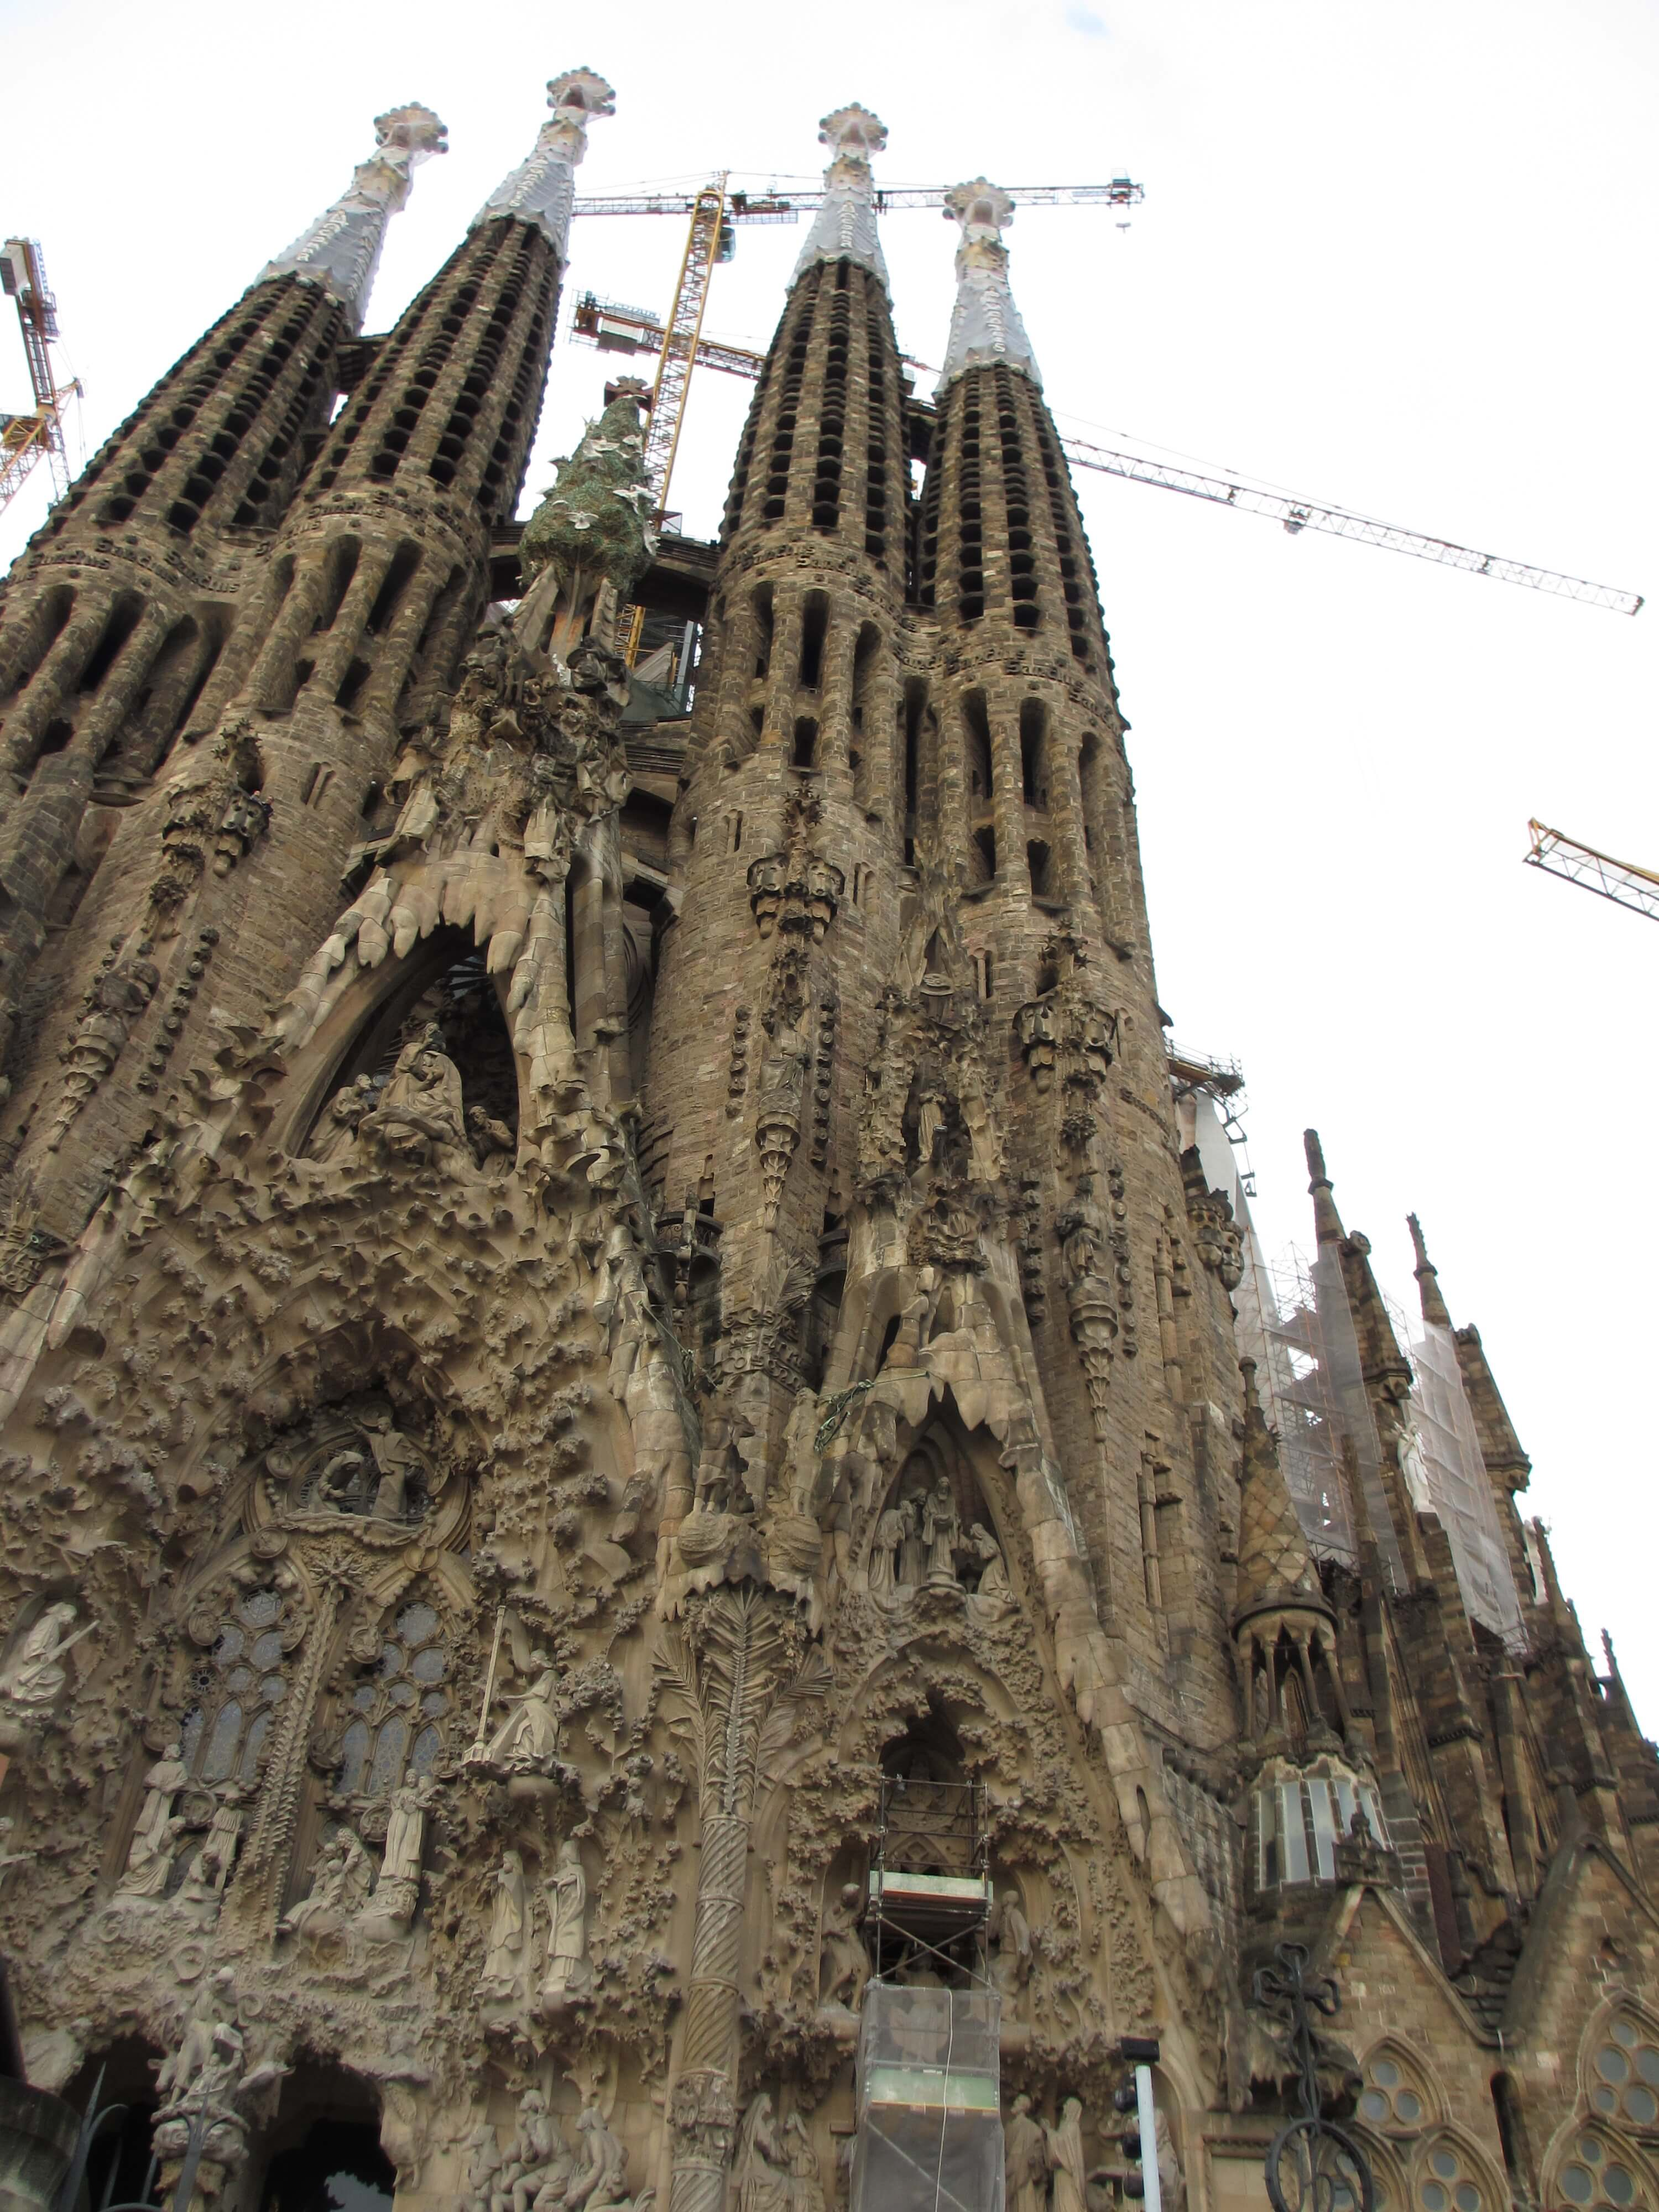 As I was leaving the Sagrada Familia in Barcelona the queue was over two hours long. I prebooked and walked straight in......